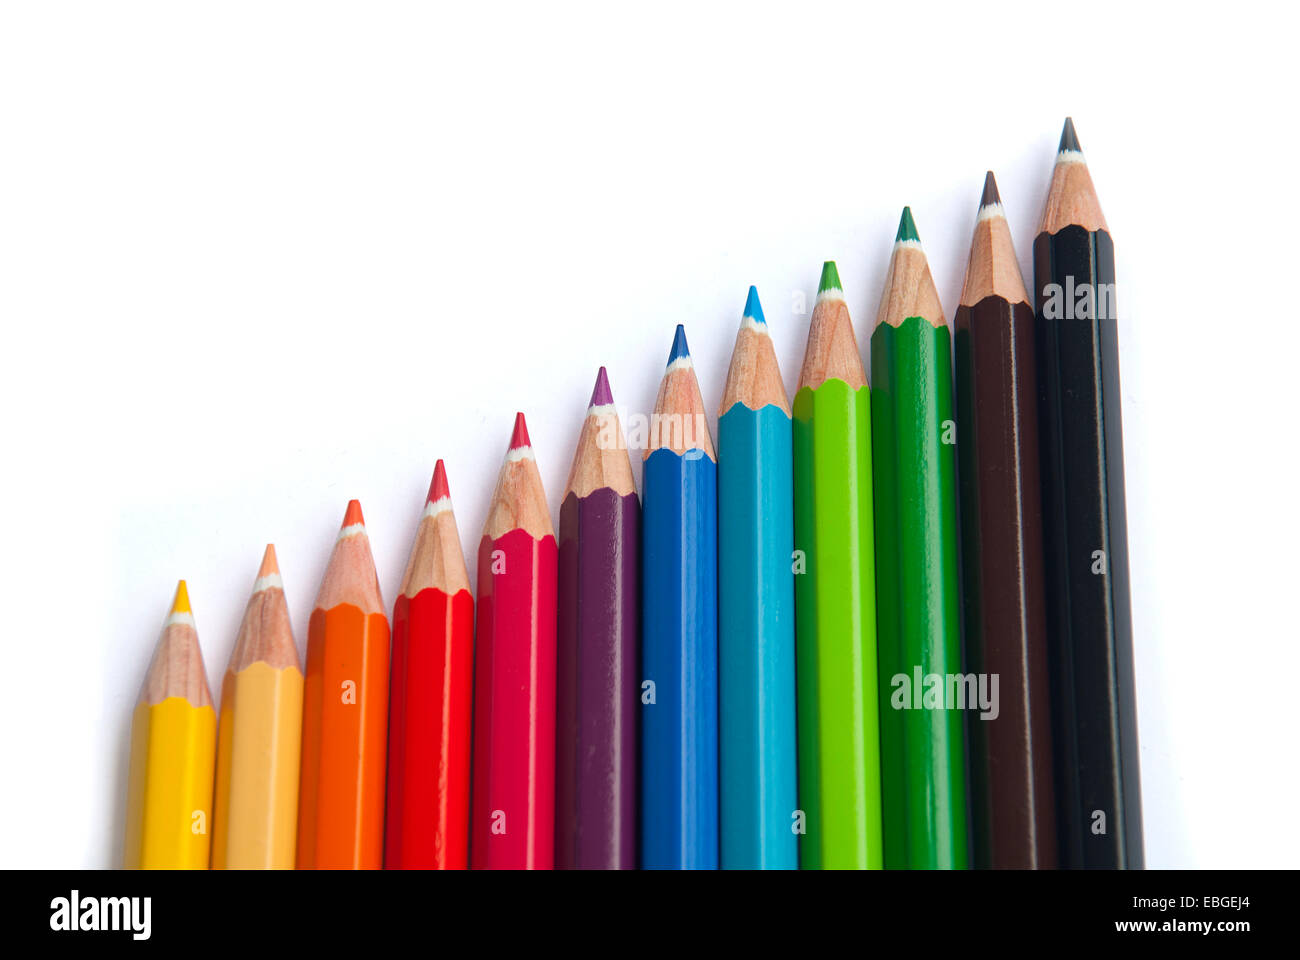 Colored pencils on a white background - Stock Image